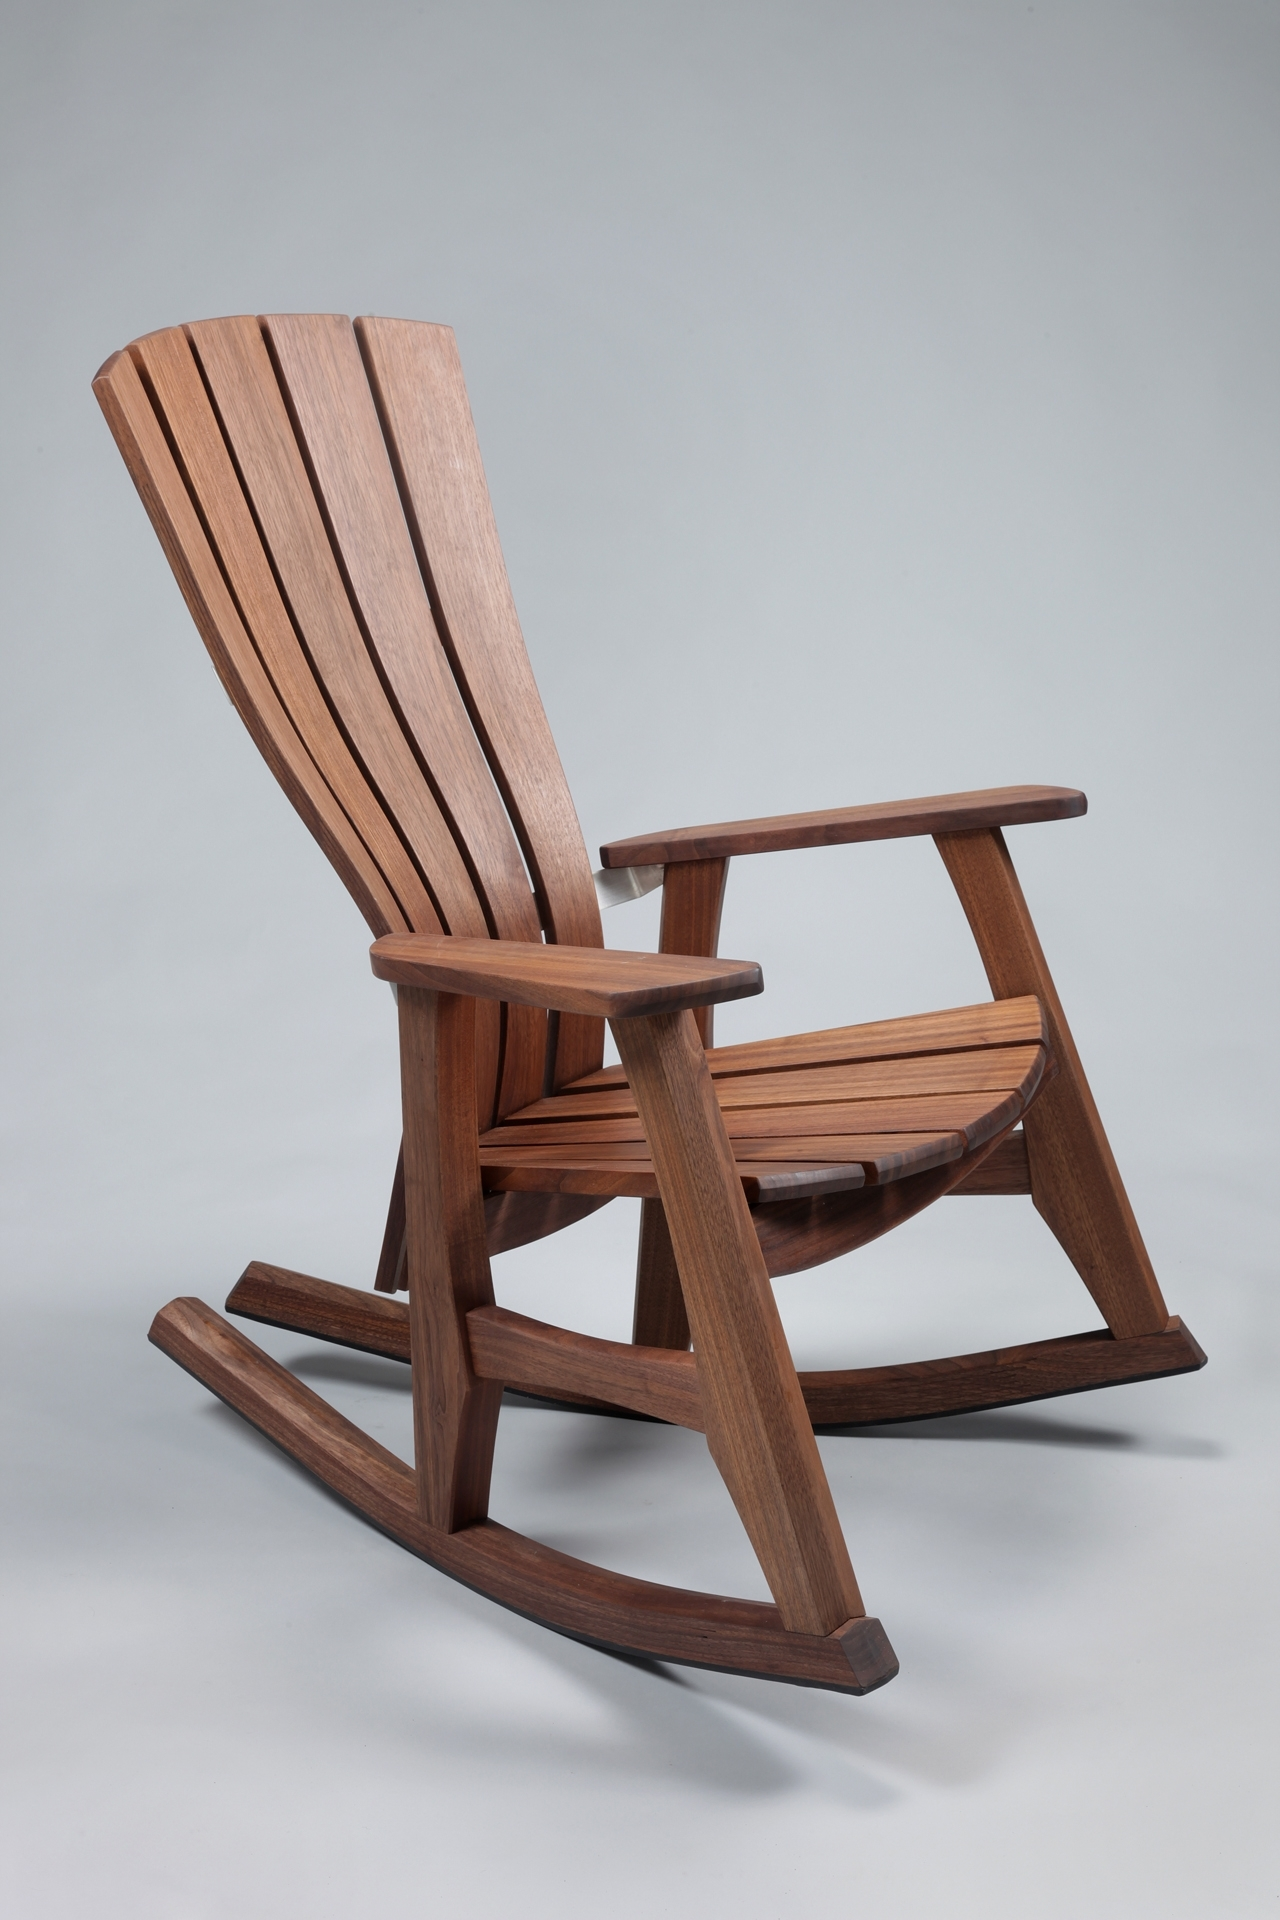 Best And Newest Unique Outdoor Rocking Chairs With Regard To Sunniva Rocking Chair Furniture Ideas Chairs Wooden Outdoor (View 2 of 15)